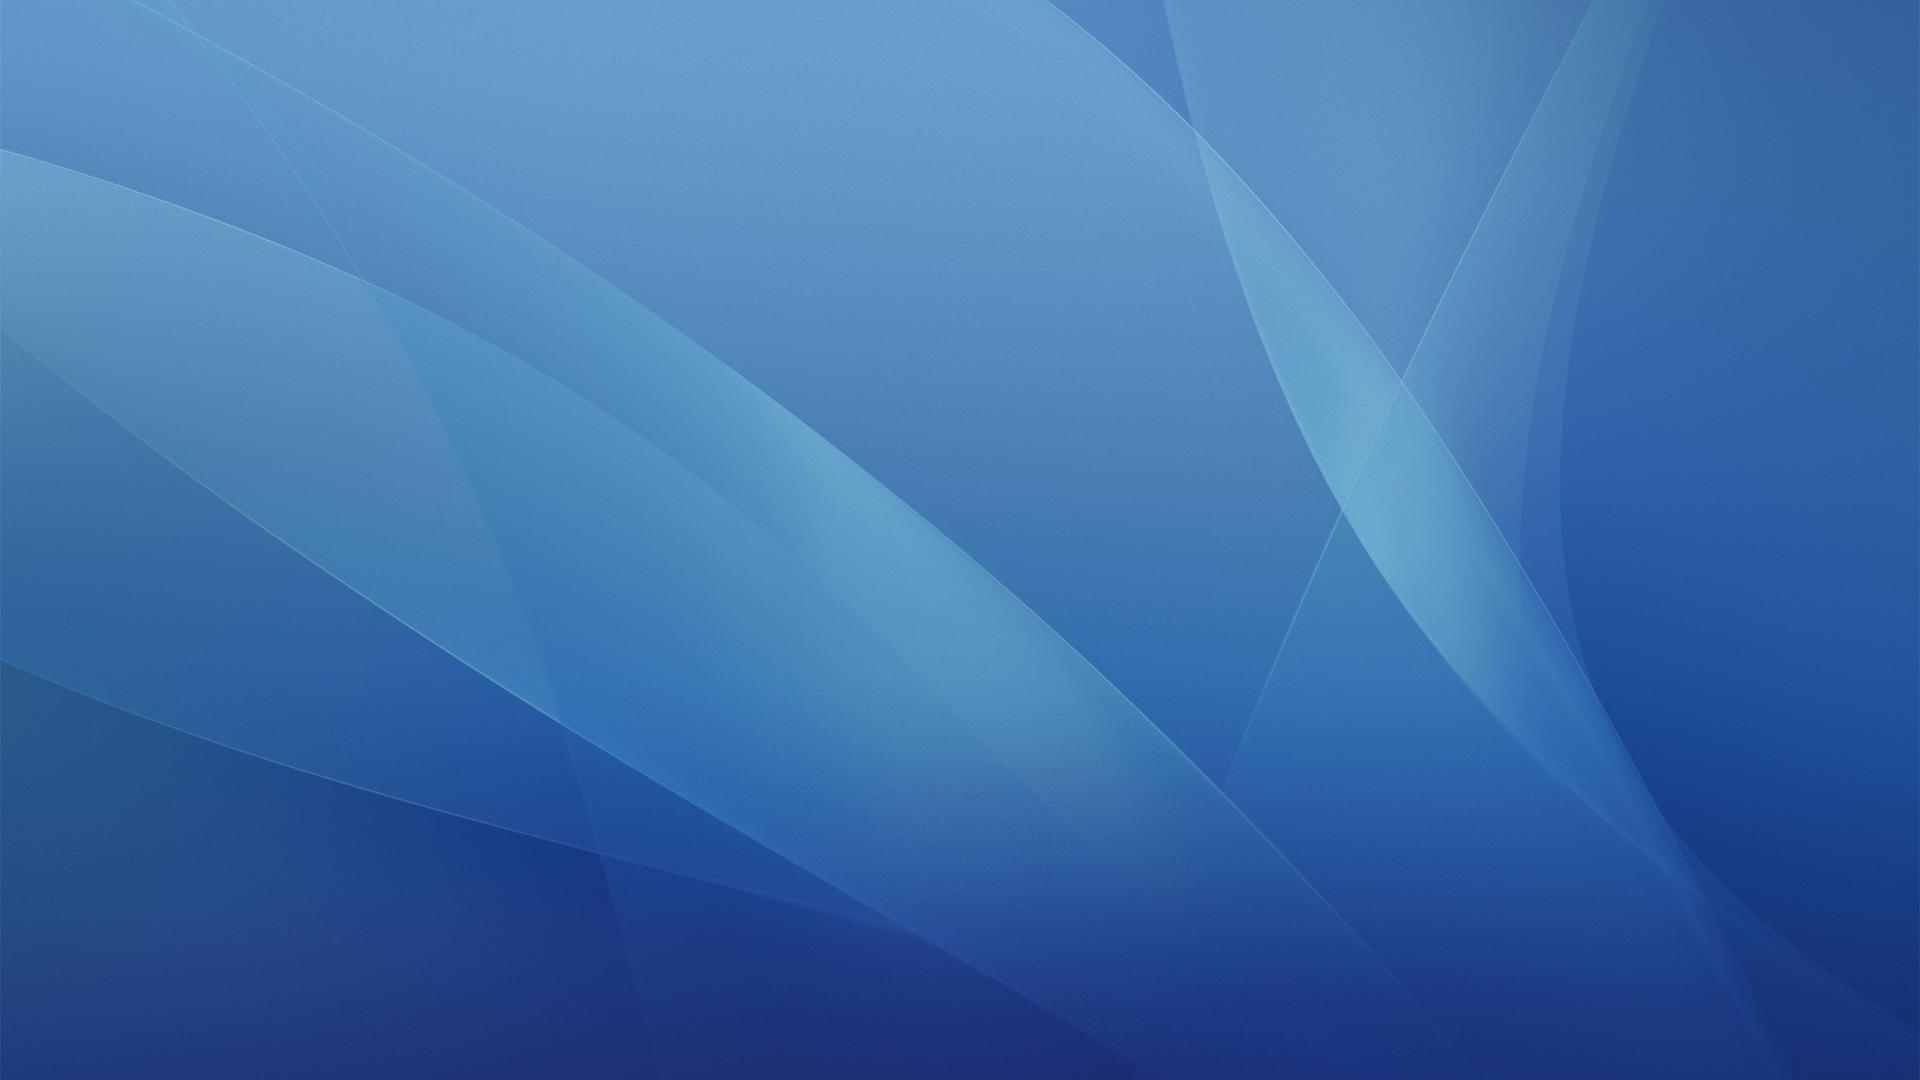 1920x1080 abstract Blue texture wallpaper background wide wallpapers 1920x1080